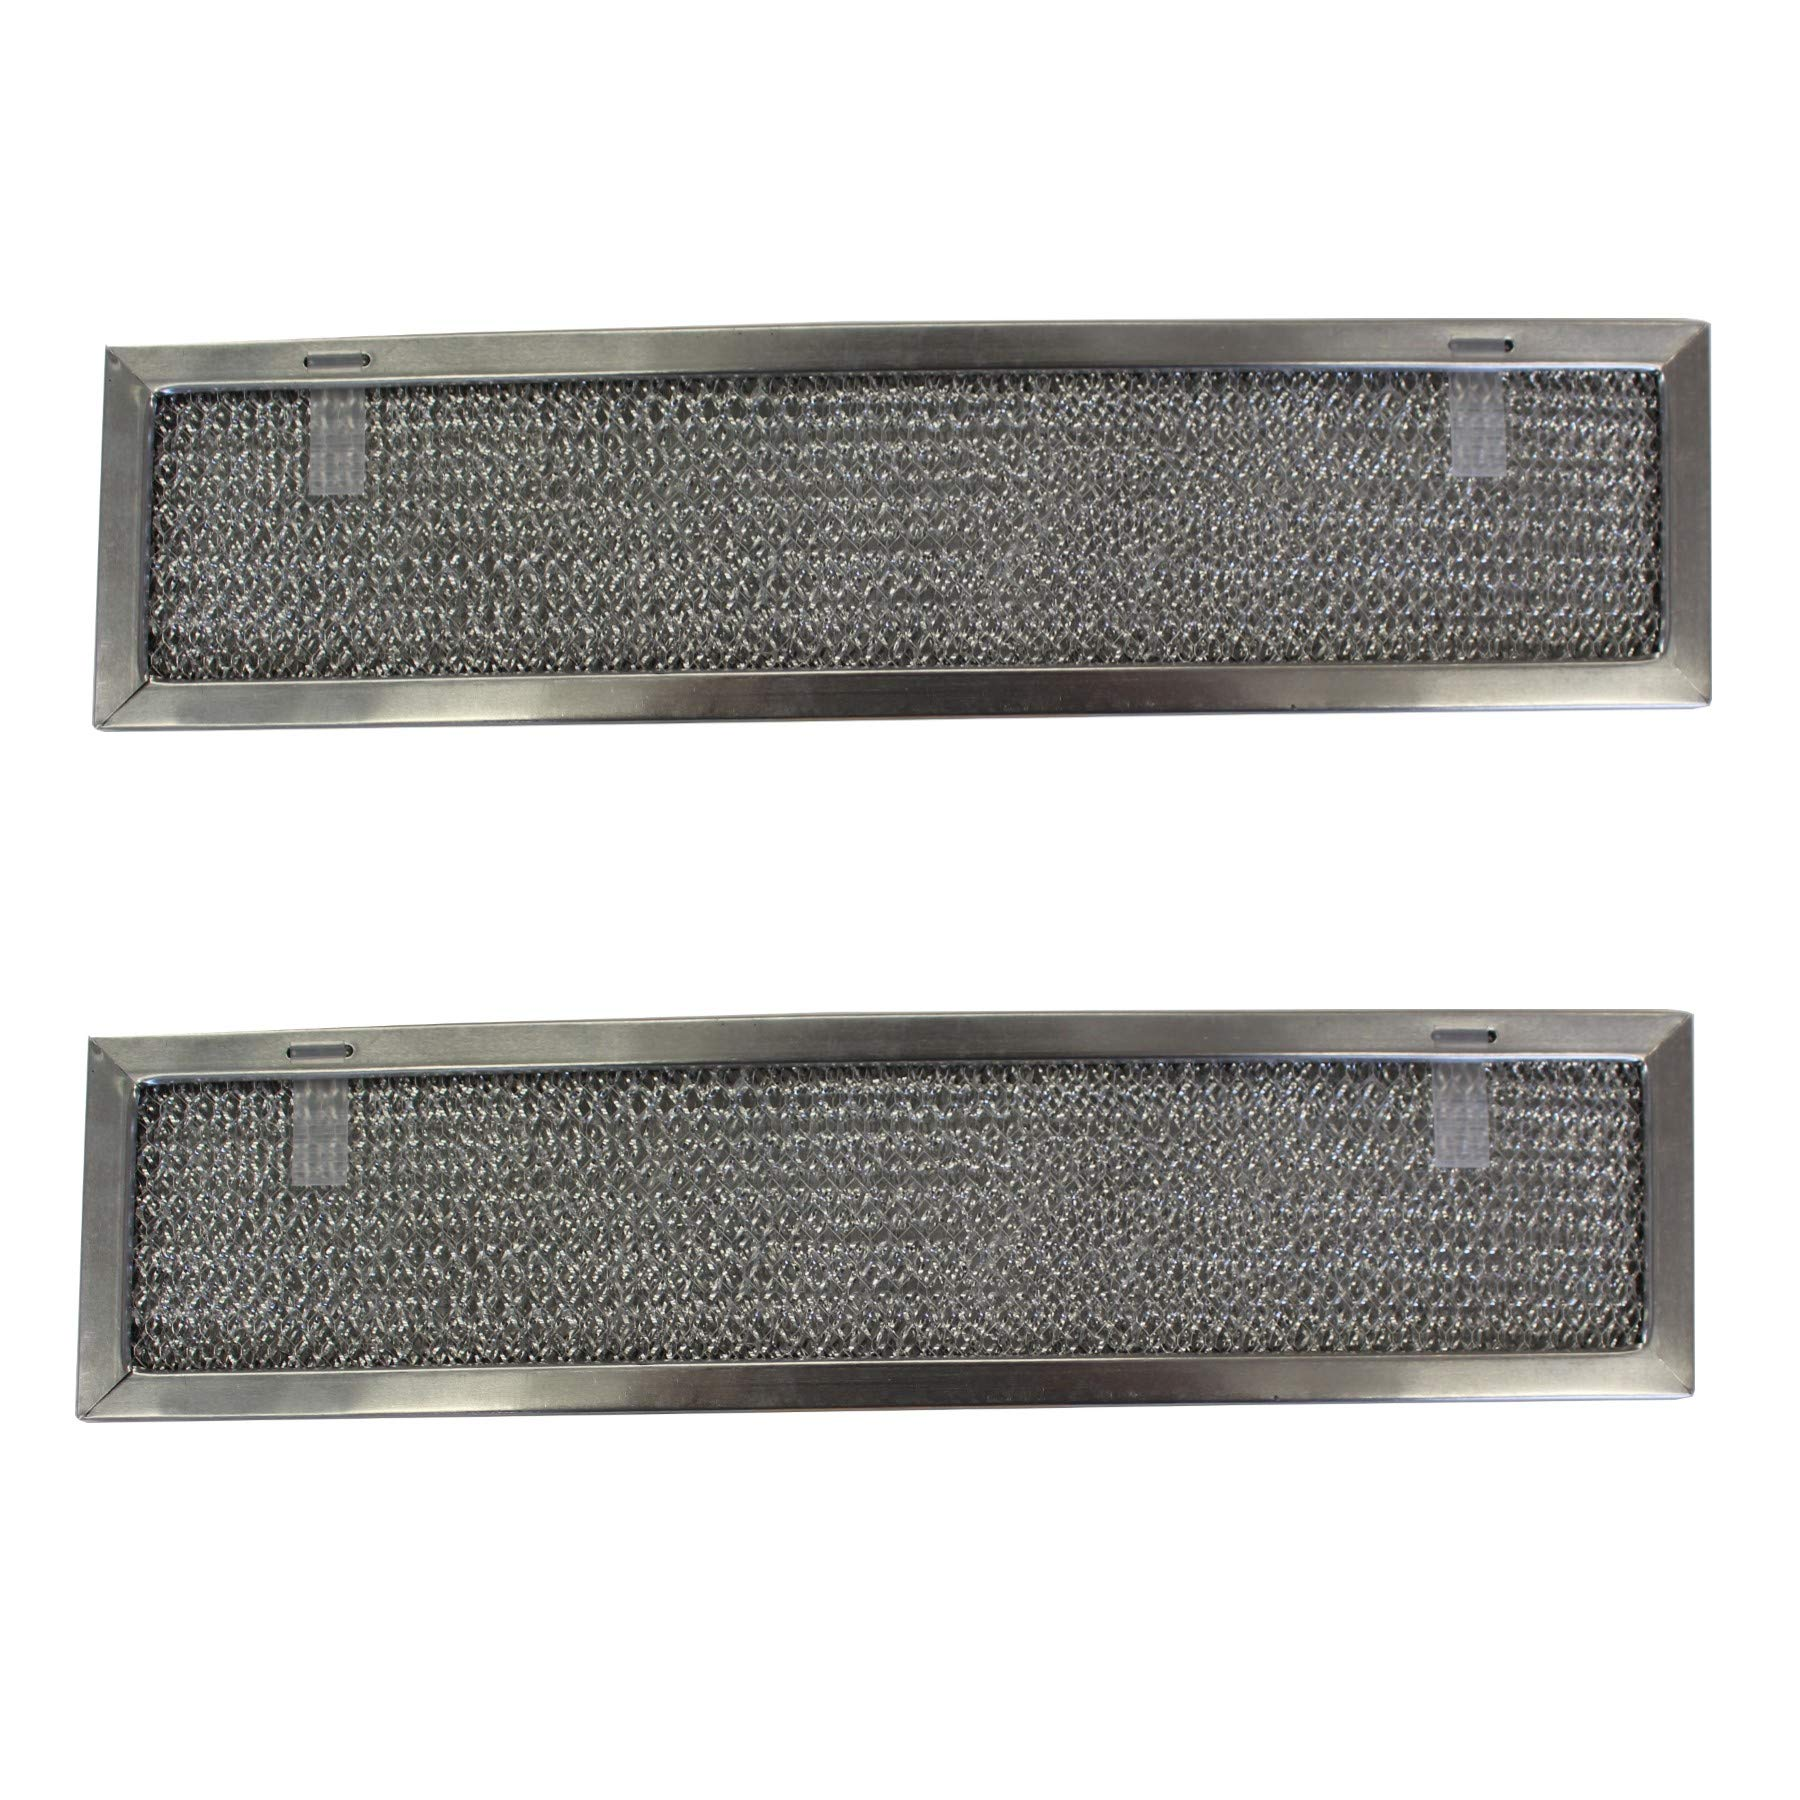 Replacement Aluminum Filters Compatible with Gaffers Starter 10 60579,G 8645,RHF0407  4 3/4 x 27 1/4